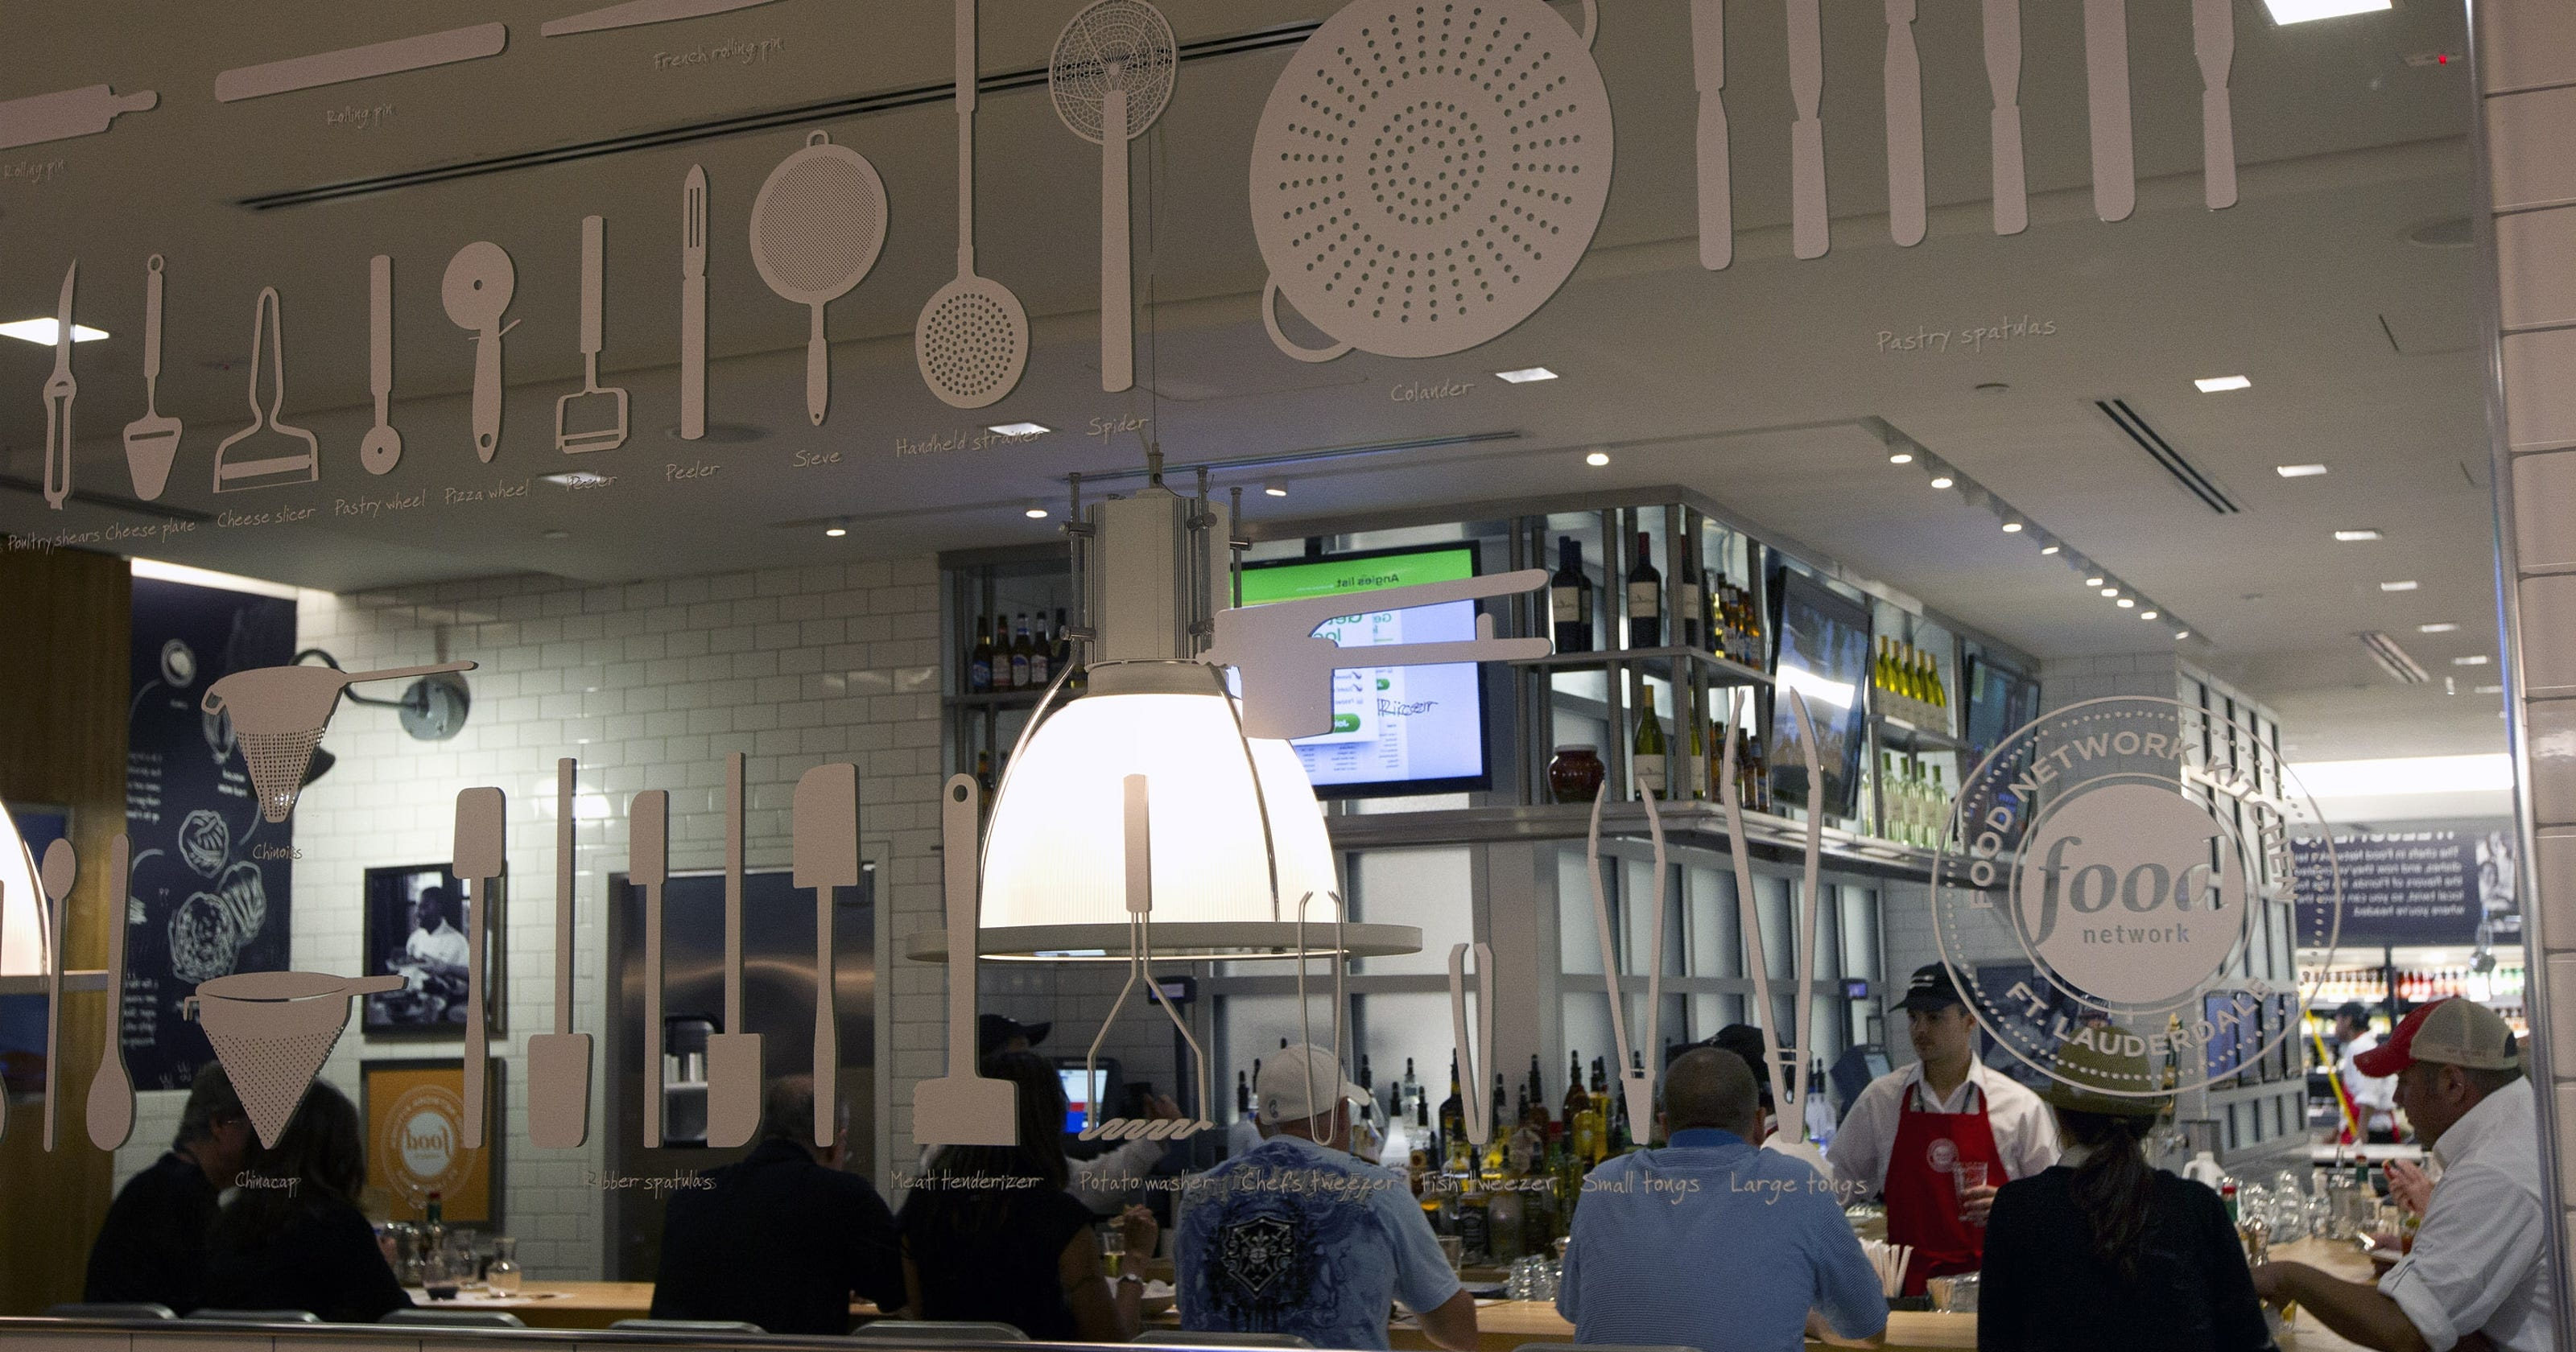 Food Network opens restaurant at Fla  airport